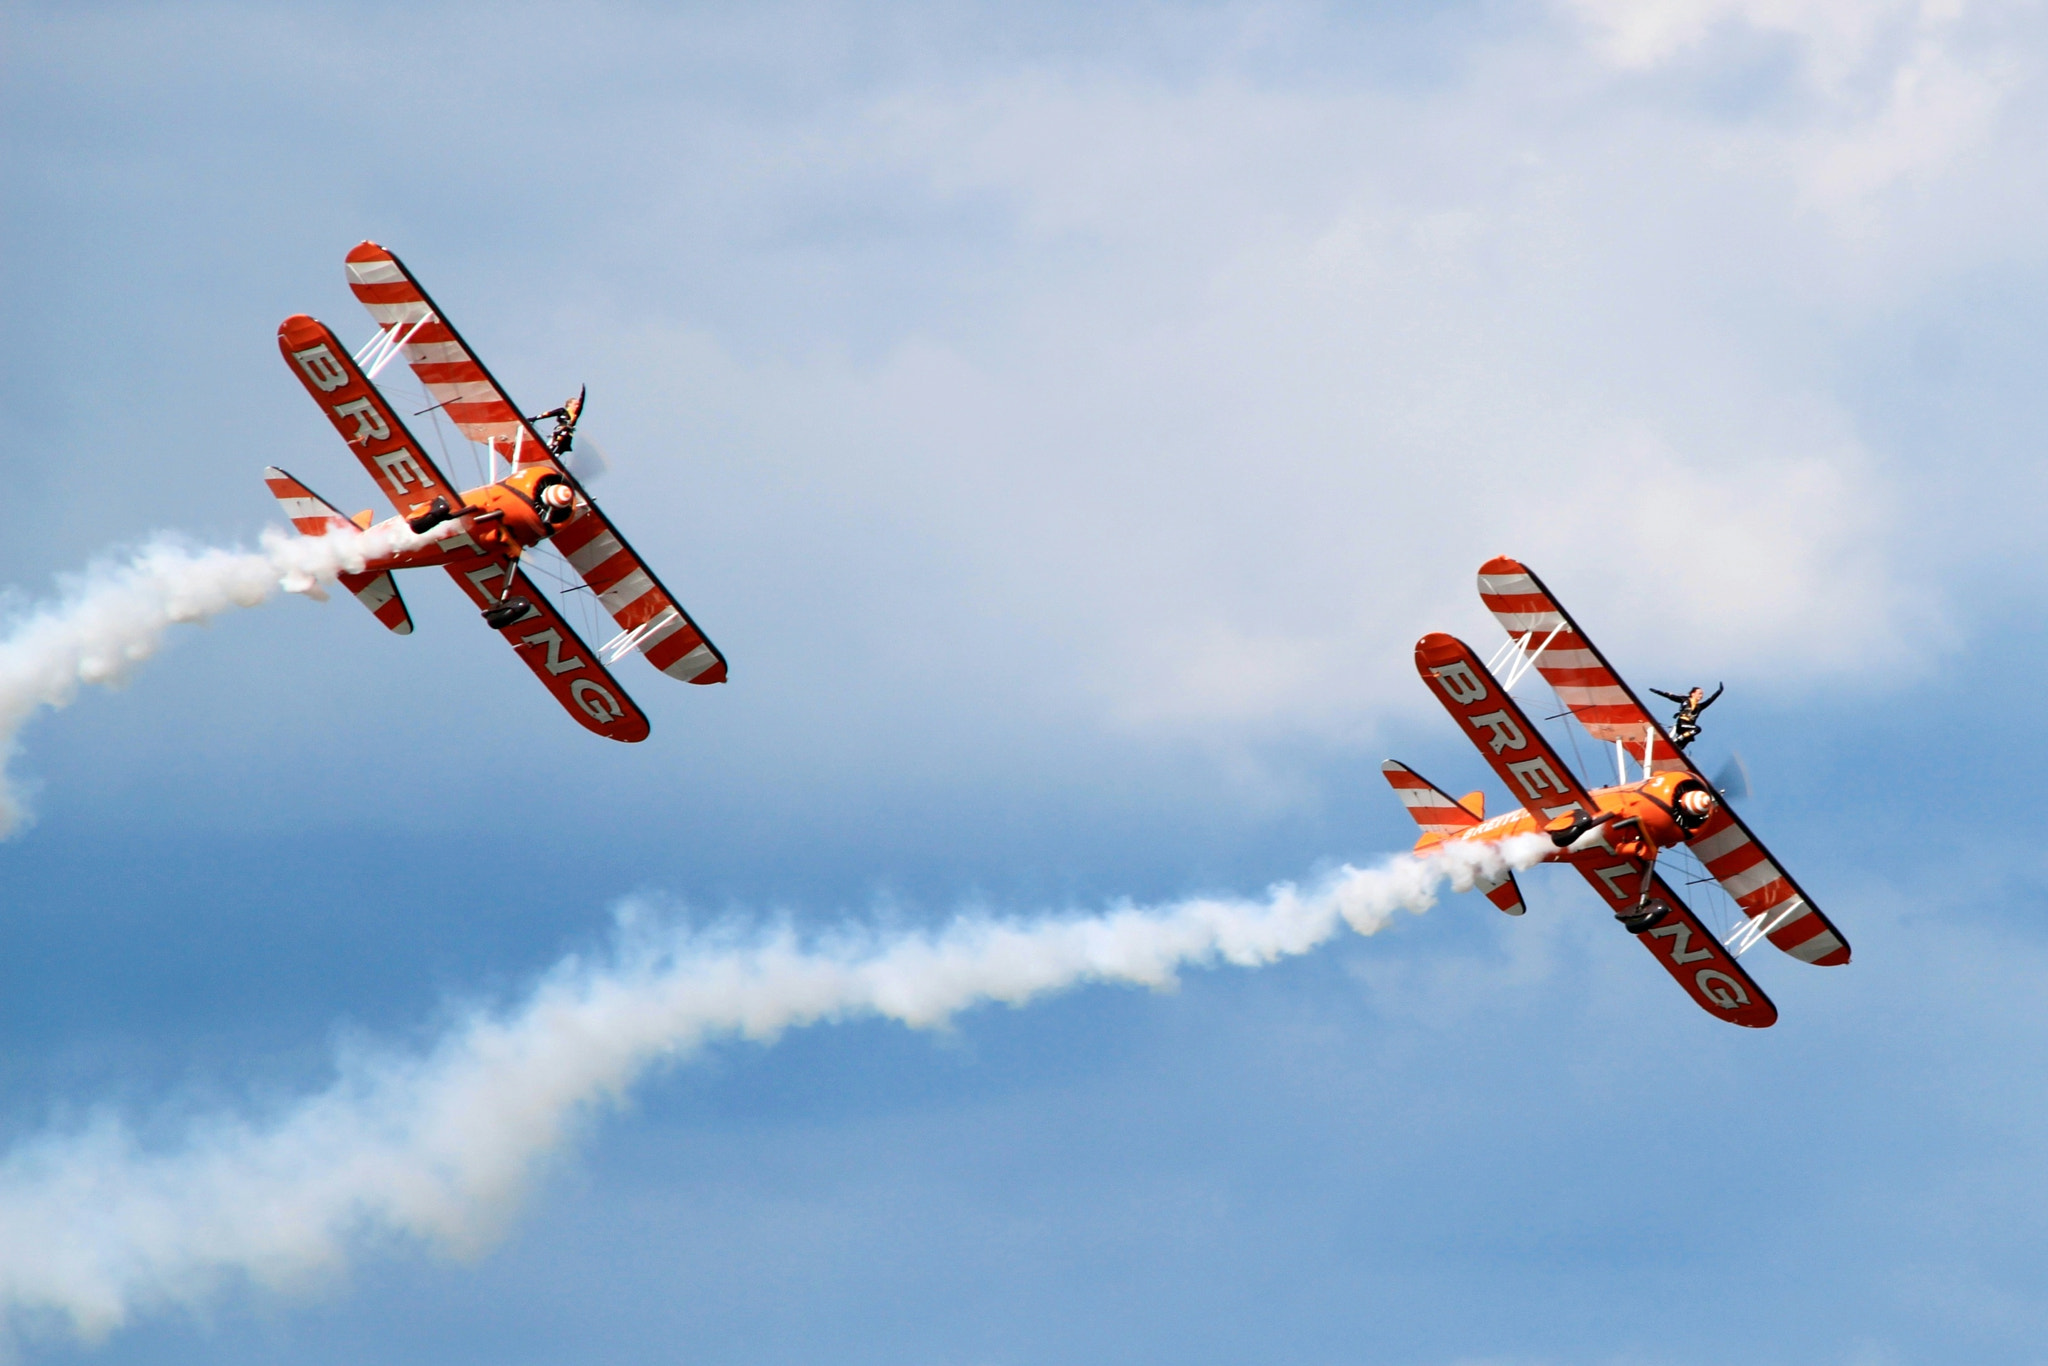 Photograph Bretling Wingwalkers by Karthik Gellia on 500px